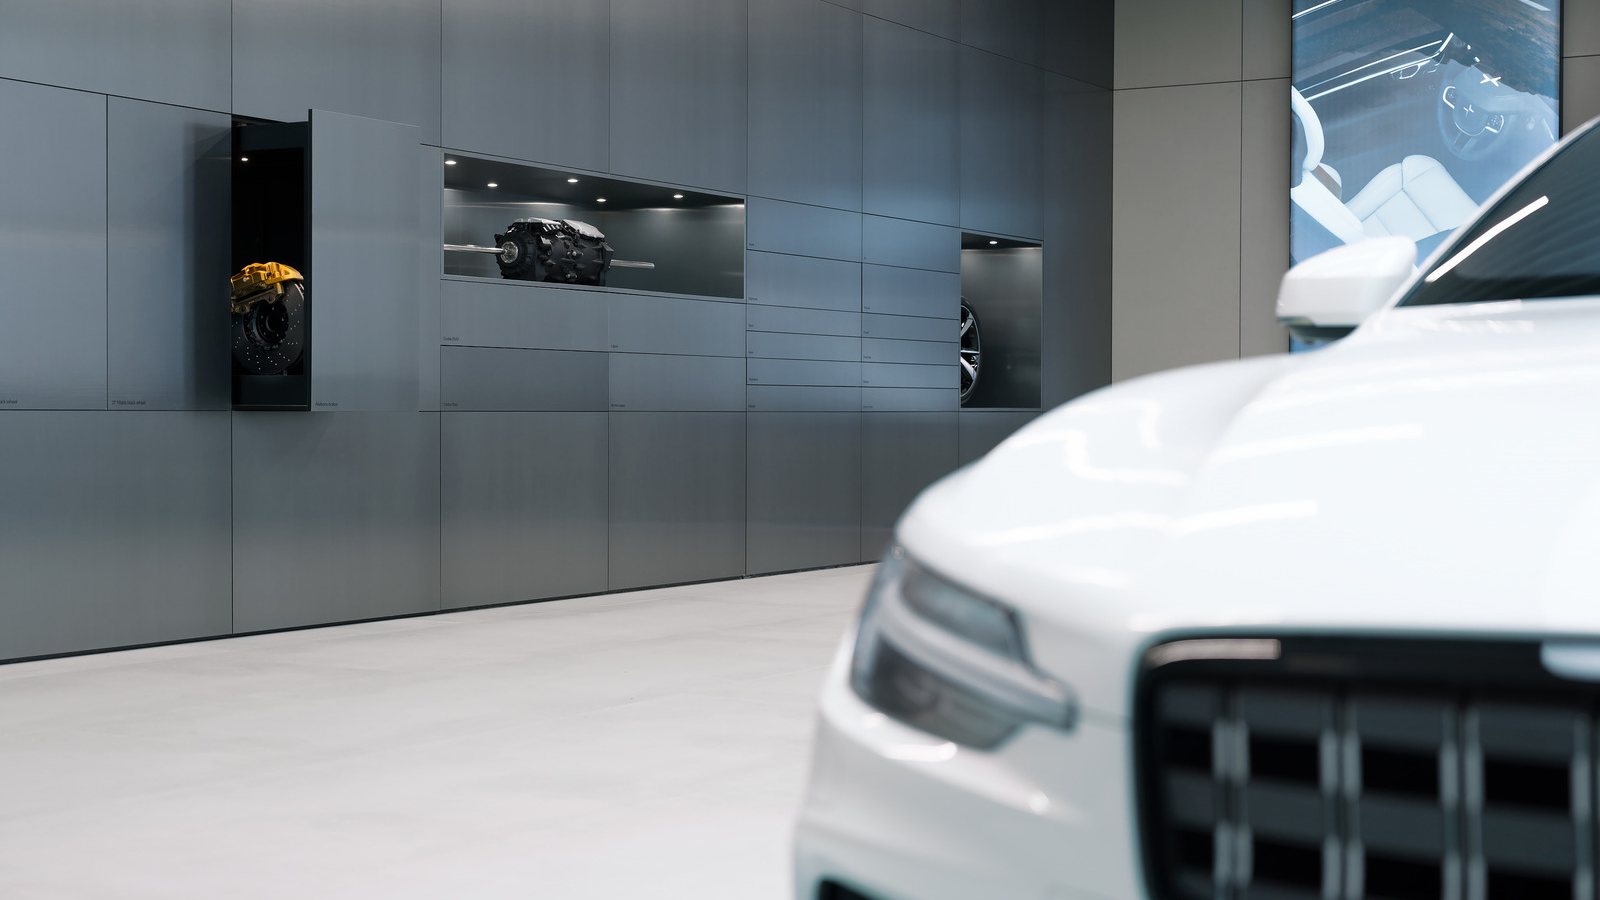 Polestar Places are creative environments where customers will be able to examine the inner workings of the car